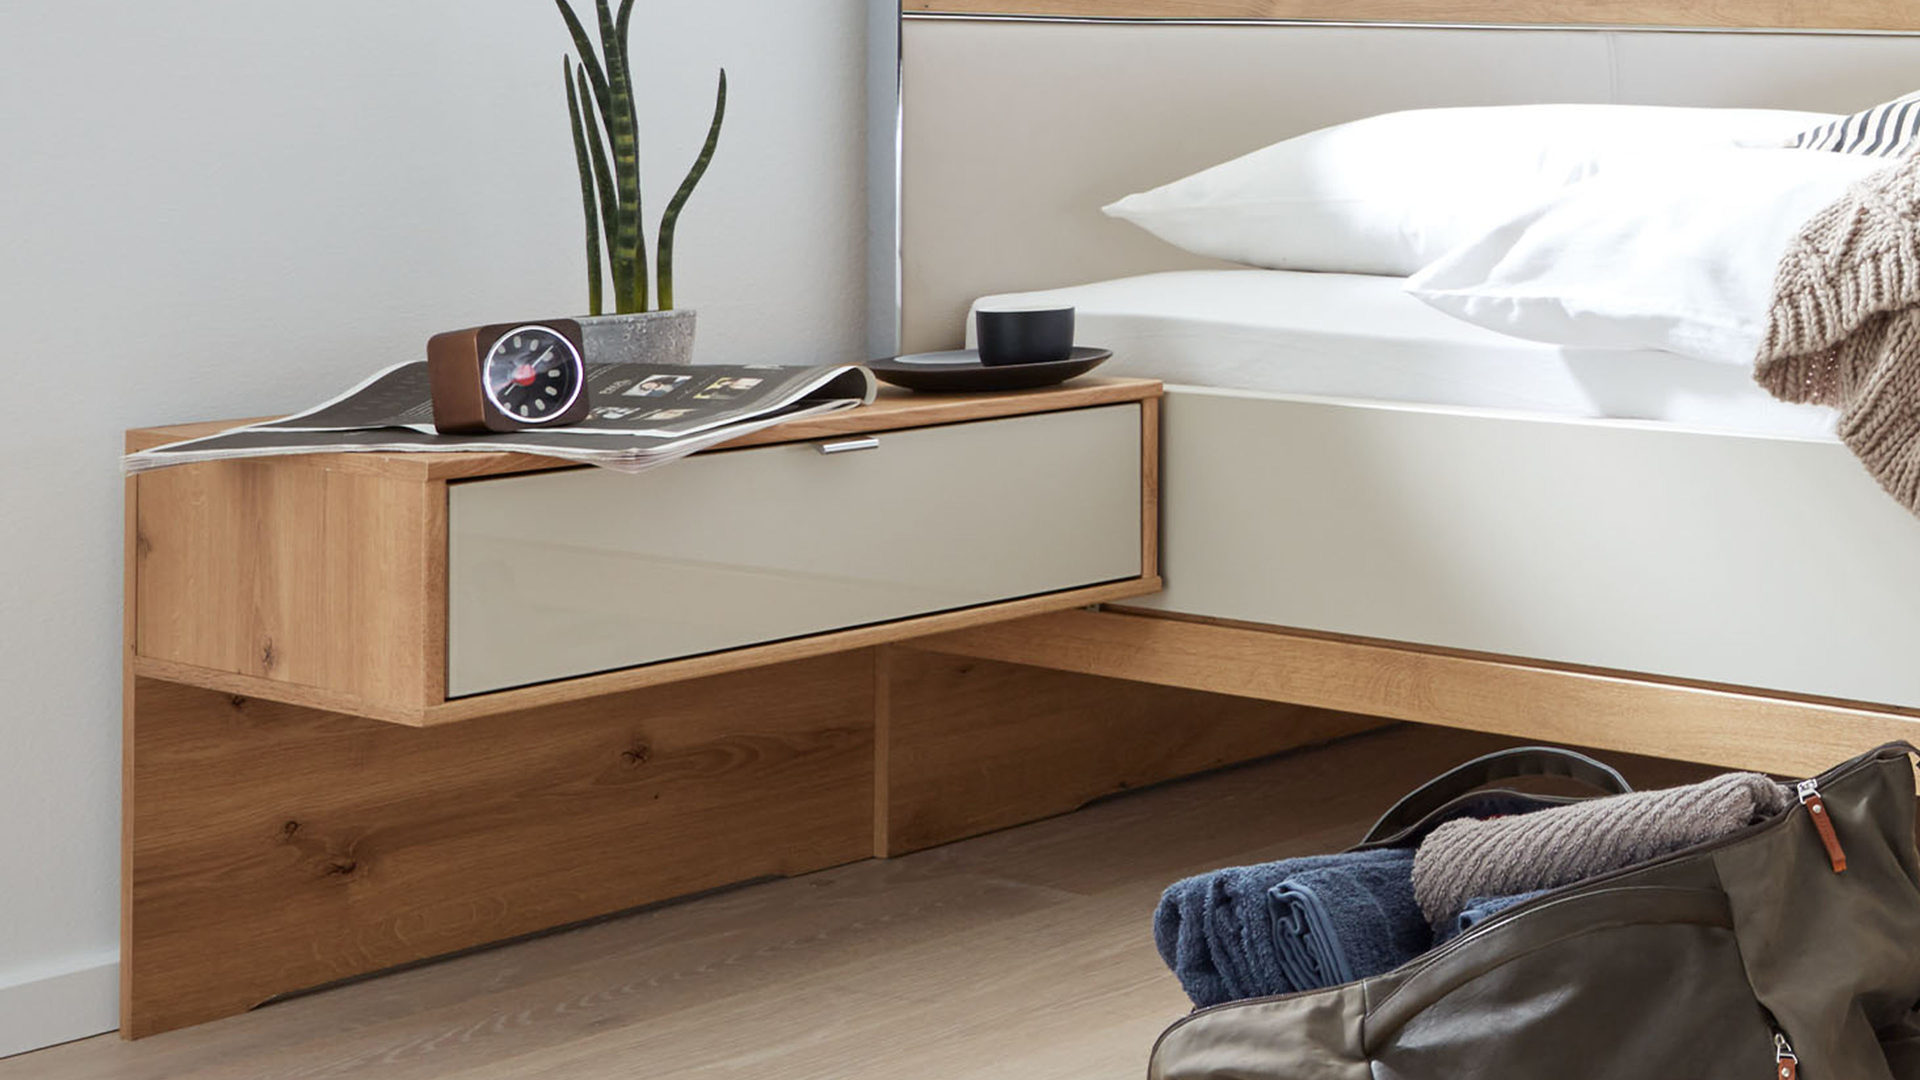 Nachtkommoden-Set Interliving aus Holz in Weiß Interliving Schlafzimmer Serie 1017 – Hängekonsolen-Set 618 Bianco eichefarbene & champagnerfarbene Oberflächen – zweiteilig